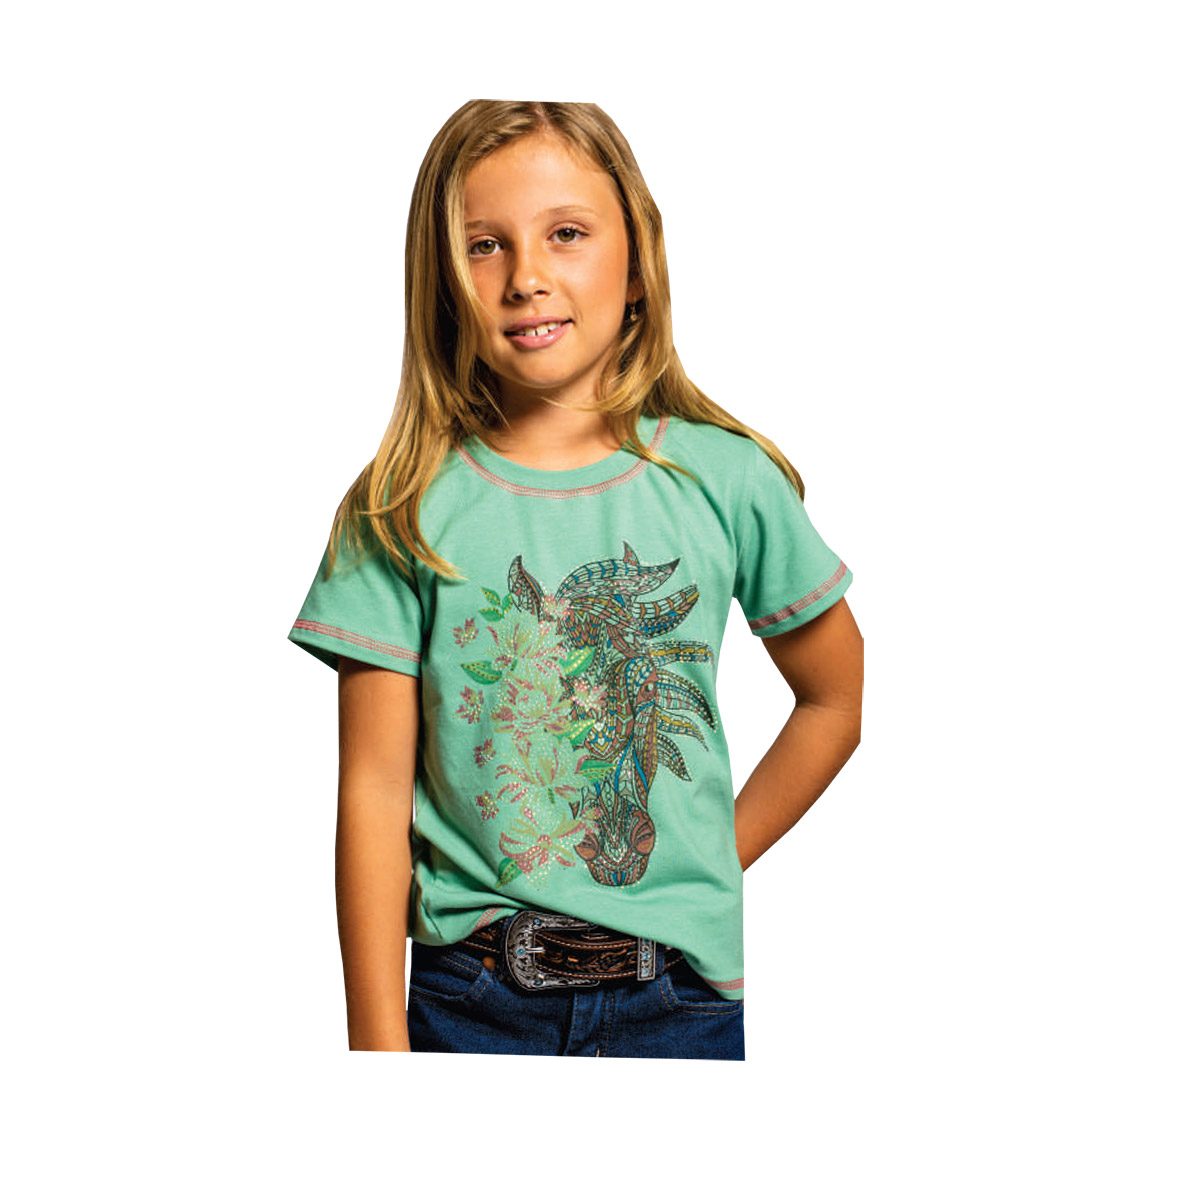 T-Shirt Infantil Miss Country Alquimia